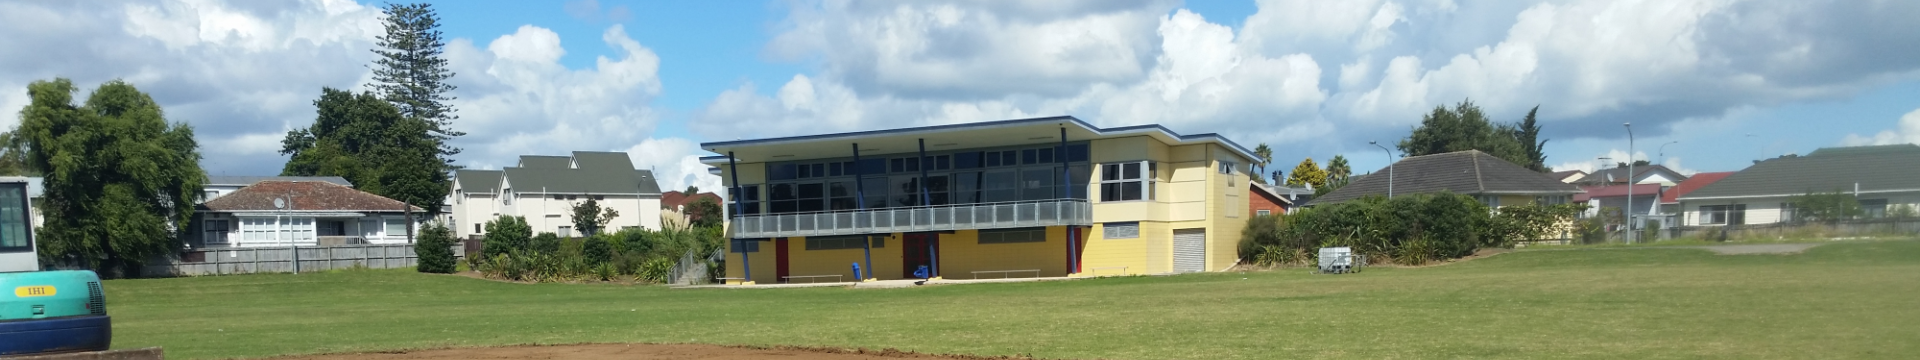 Otahuhu School sliders